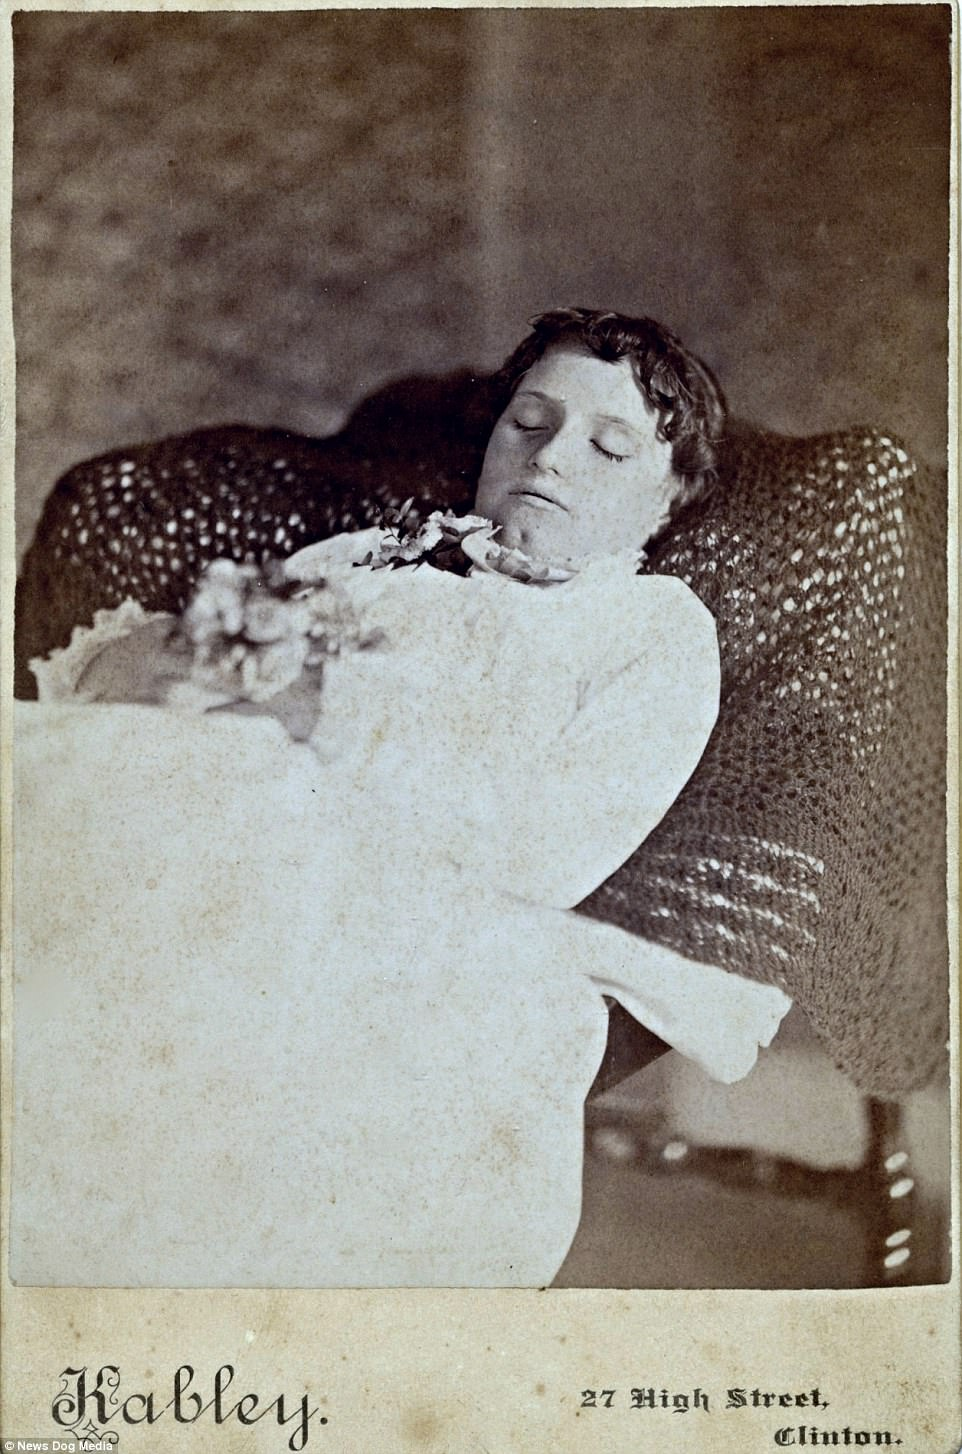 A deceased Mary Maria Stuart, circa 1885. Photographers would try to make the dead subjects appear alive in the images so that the photographs could serve as mementos for their family